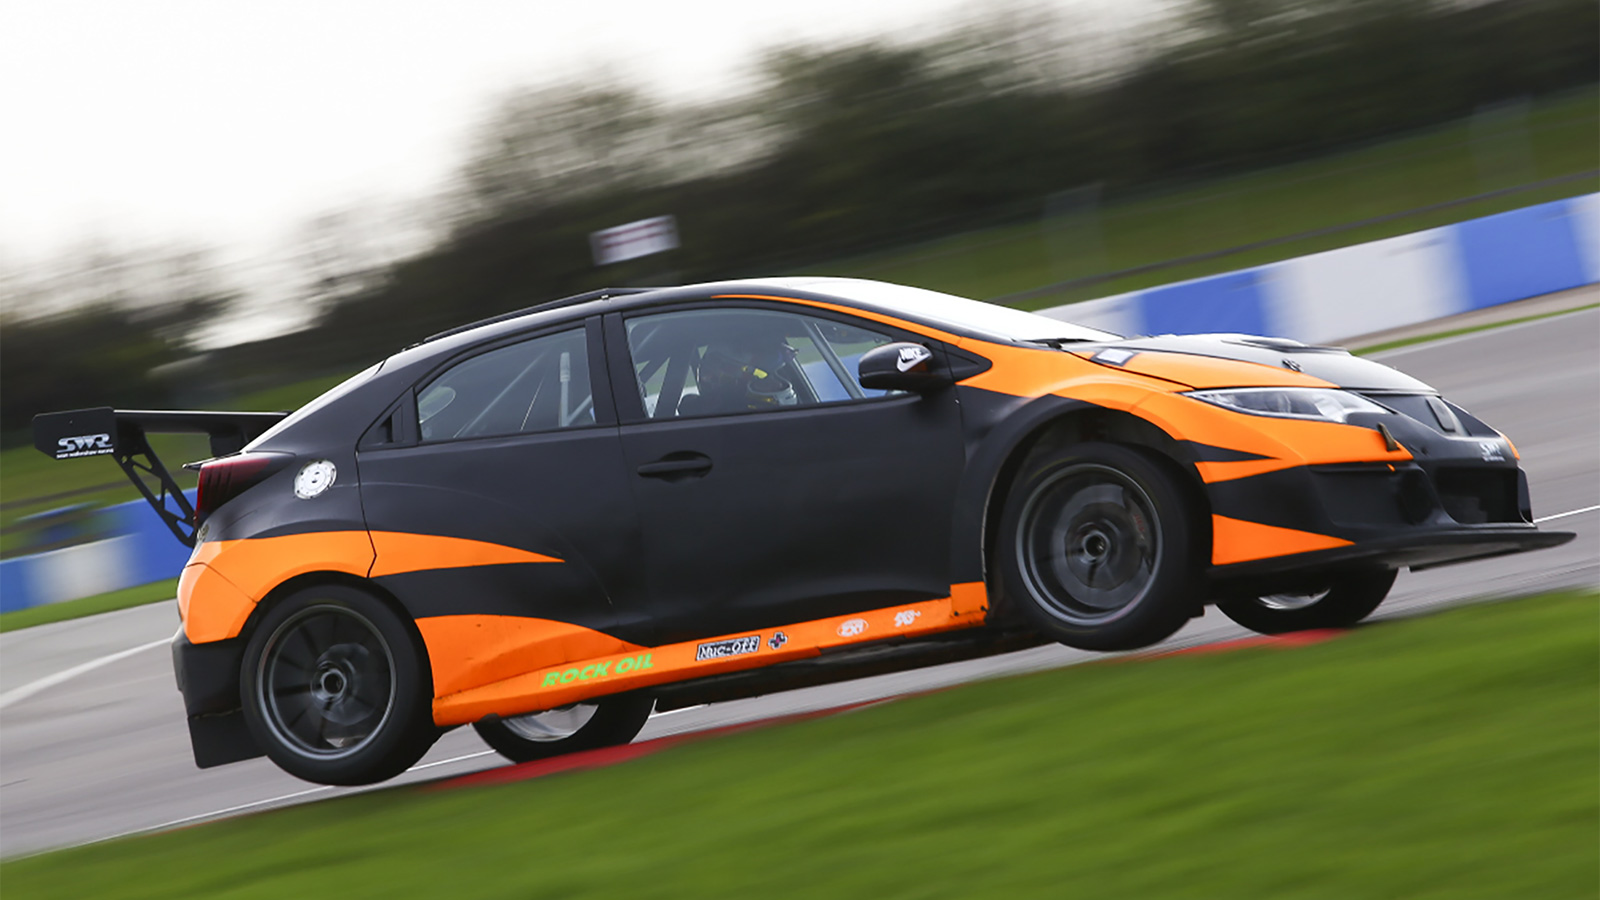 TCR UK team SWR delighted with 'impeccable' first test.